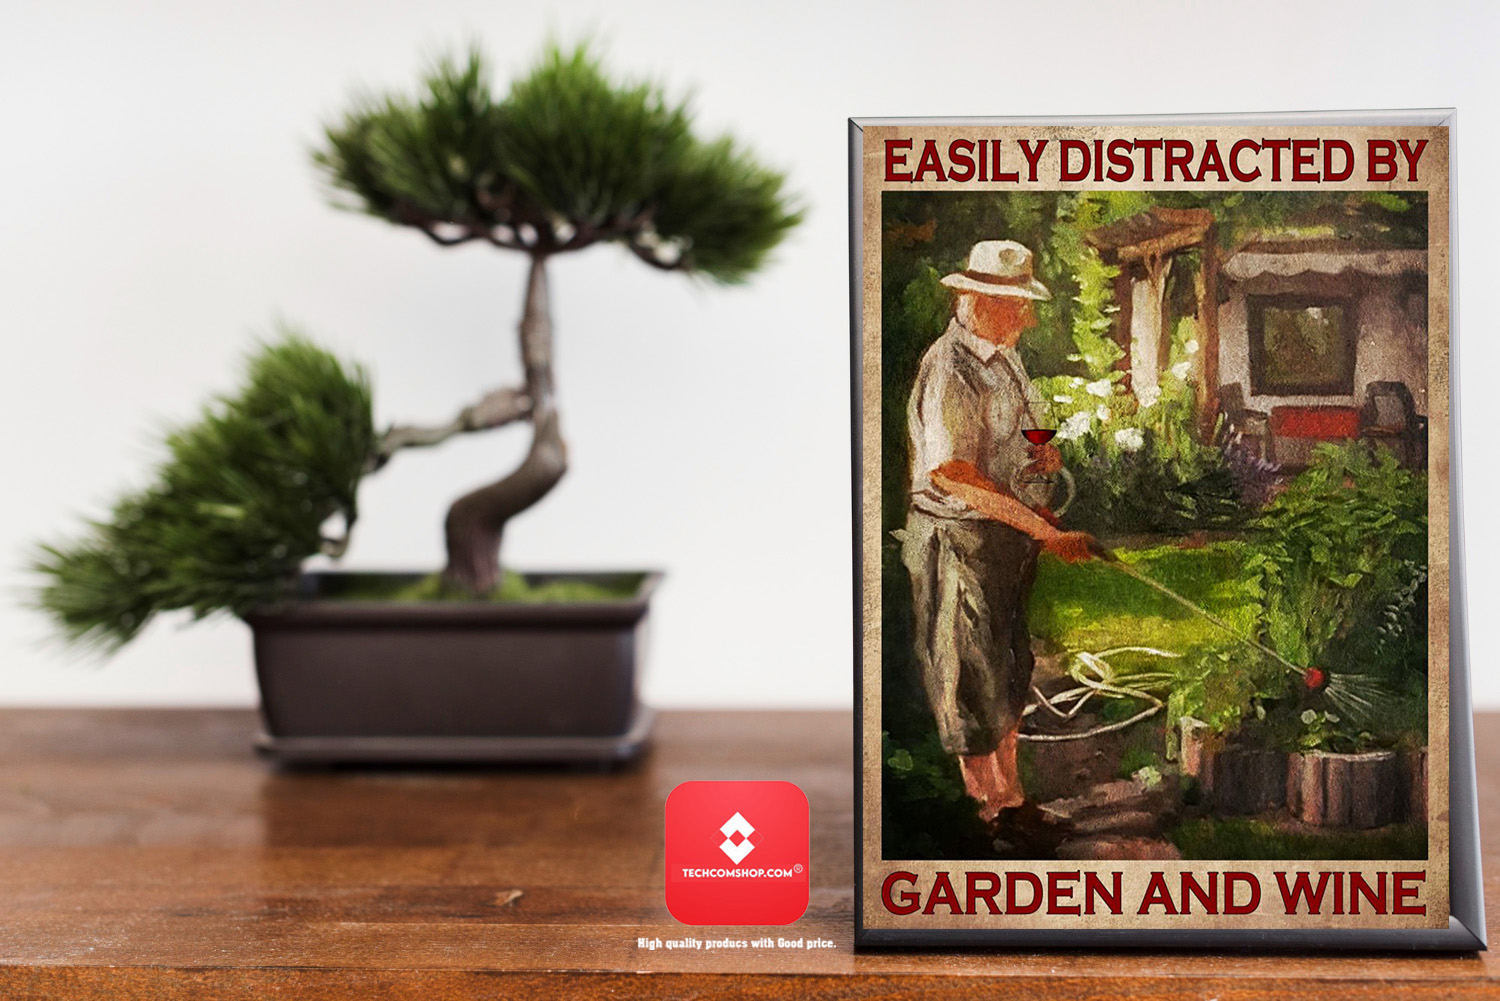 Easily distracted by garden and wine poster 7